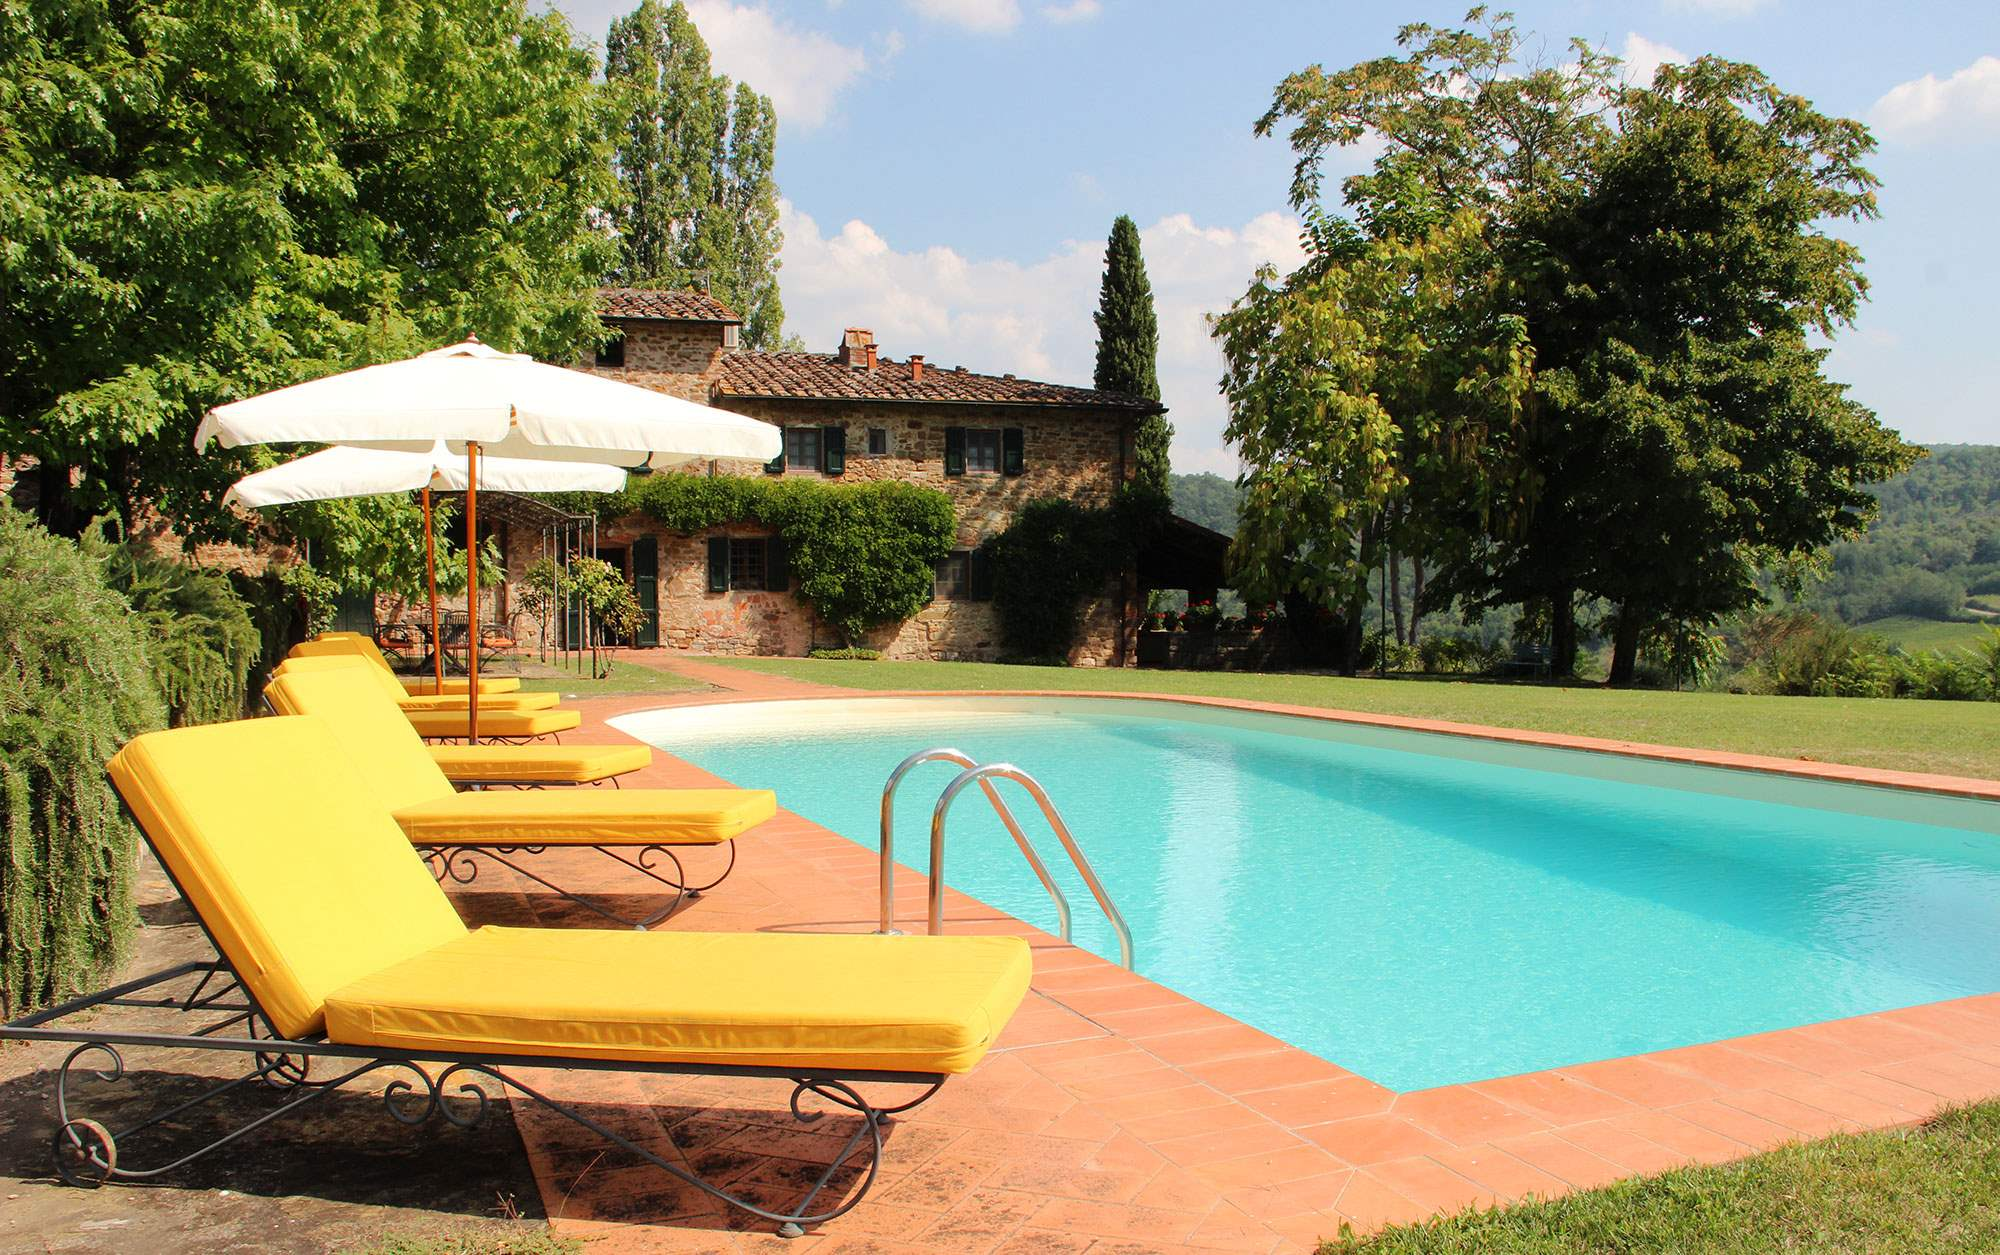 Villa Felicita, Main house and apartment, 10 persons rate, 5 bedroom villa in Chianti & Countryside, Tuscany Photo #1